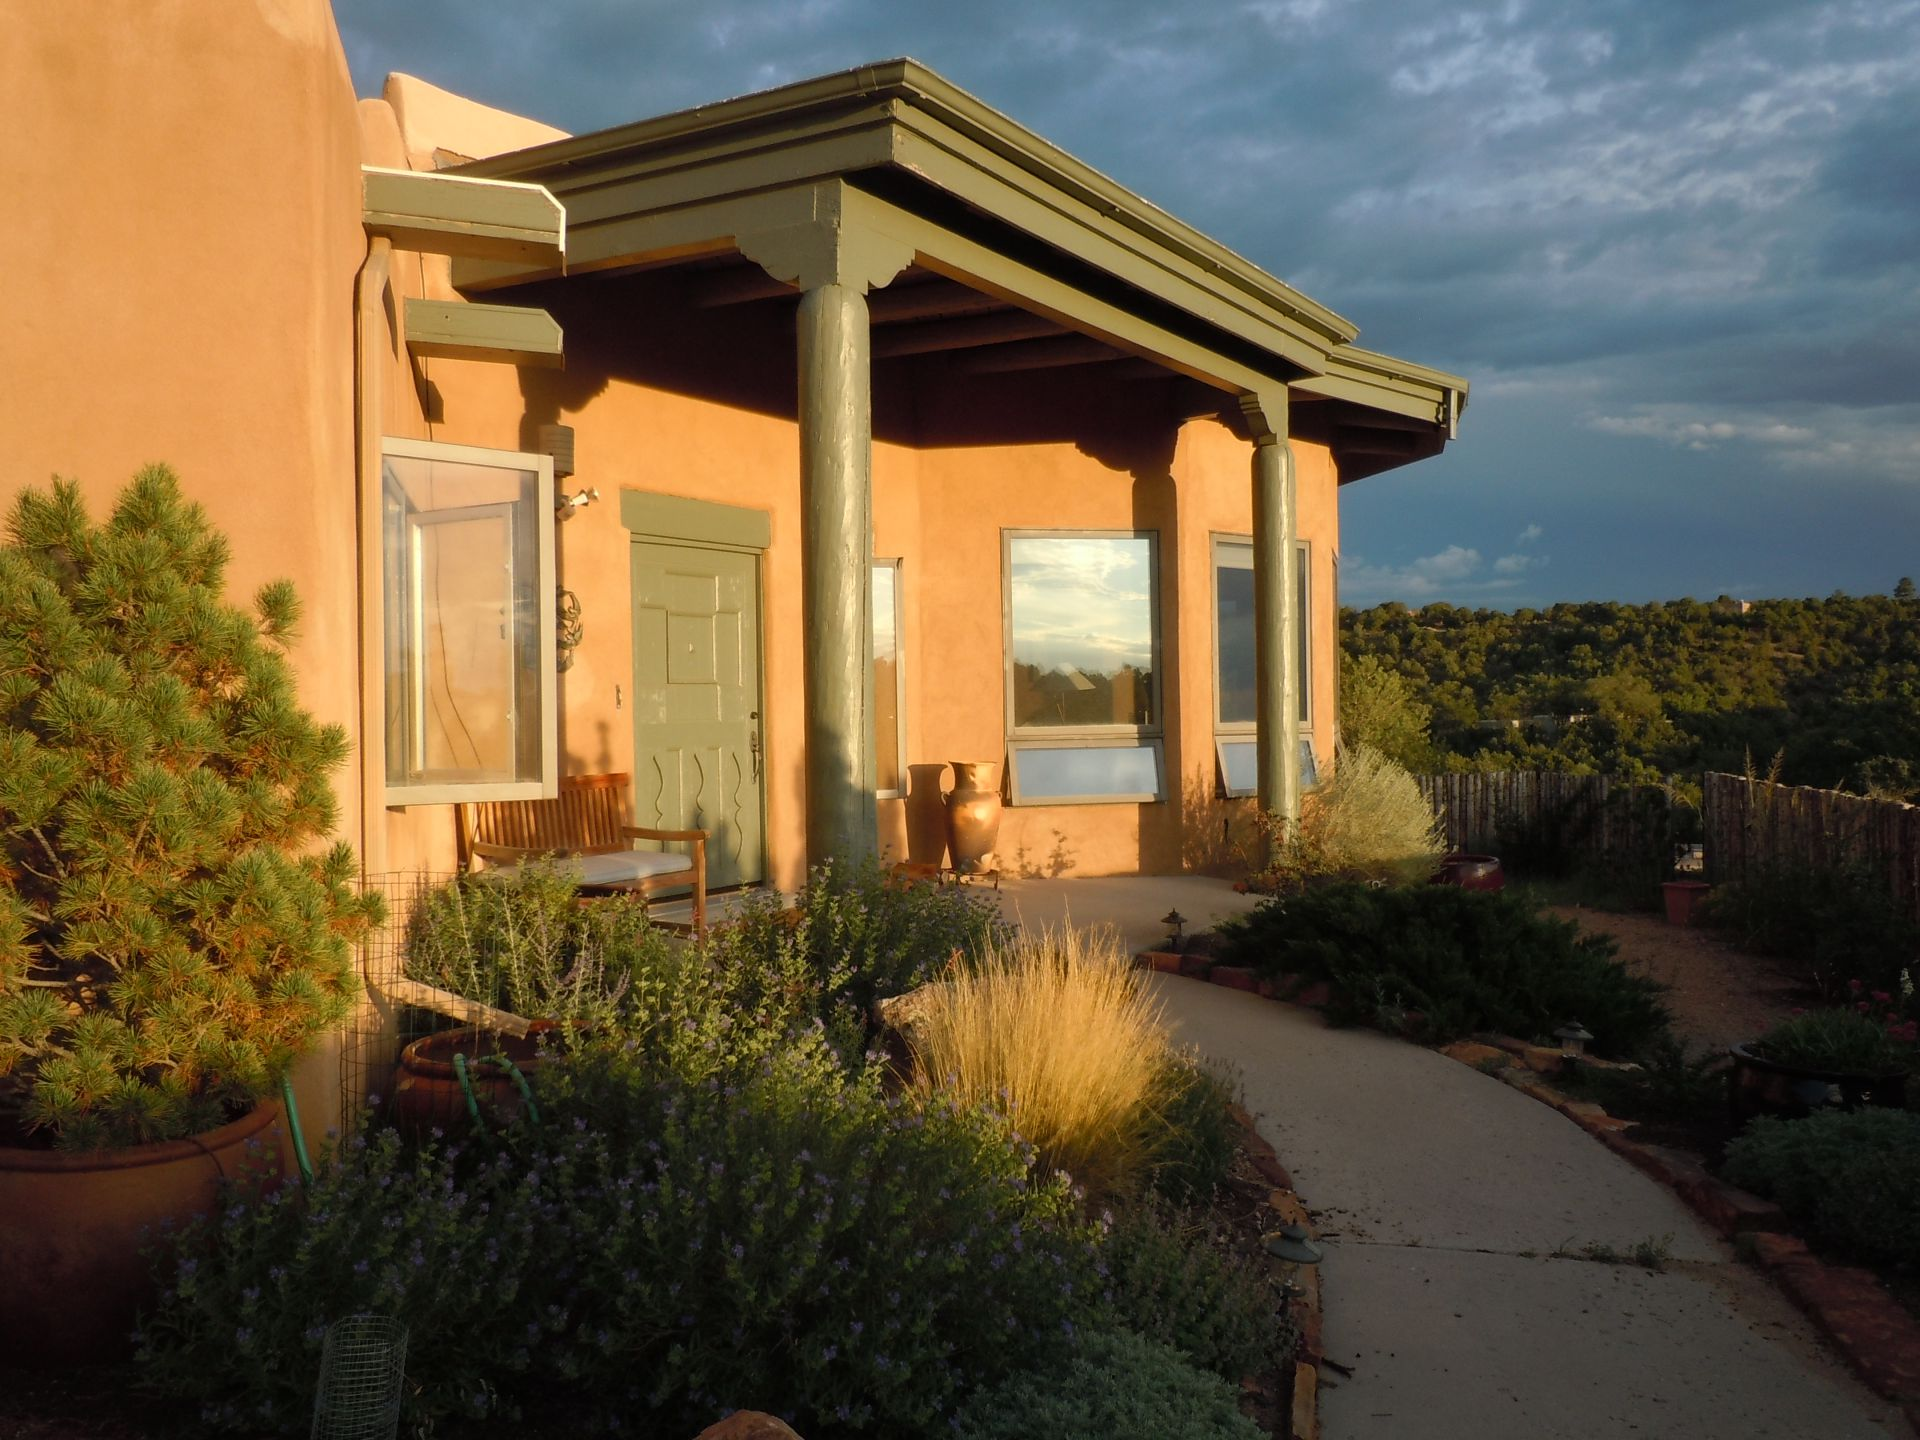 Santa Fe home filled with art, light and expansive views, near Plaza ...